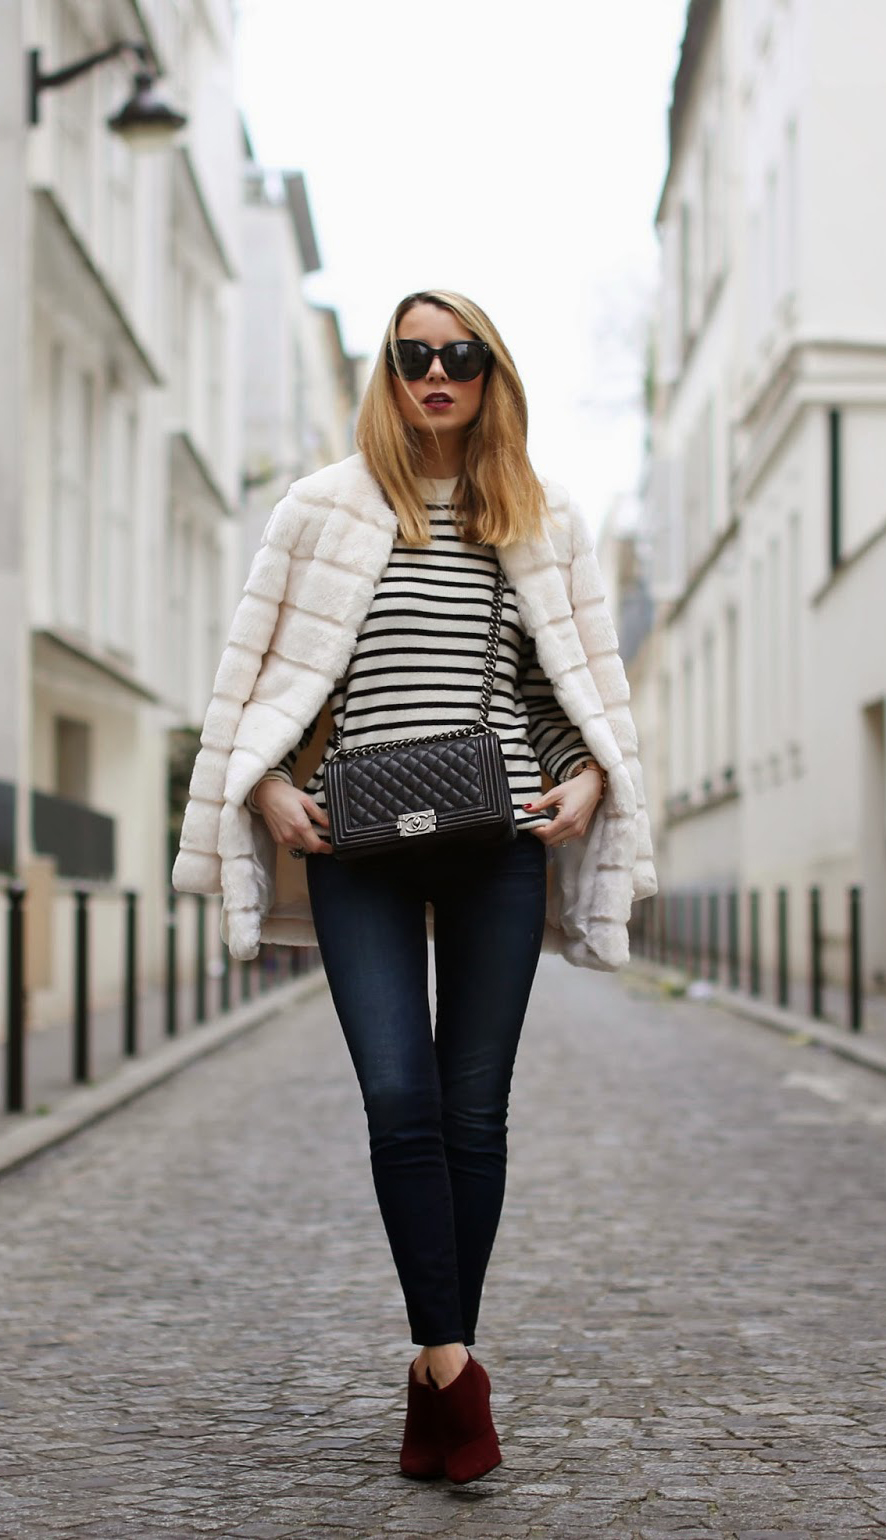 Caroline Louis is wearing a white faux fur coat and burgundy boots from Zara, jeans from Talley NYC, striped knit sweater from &Otherstories and the bag is from Chanel